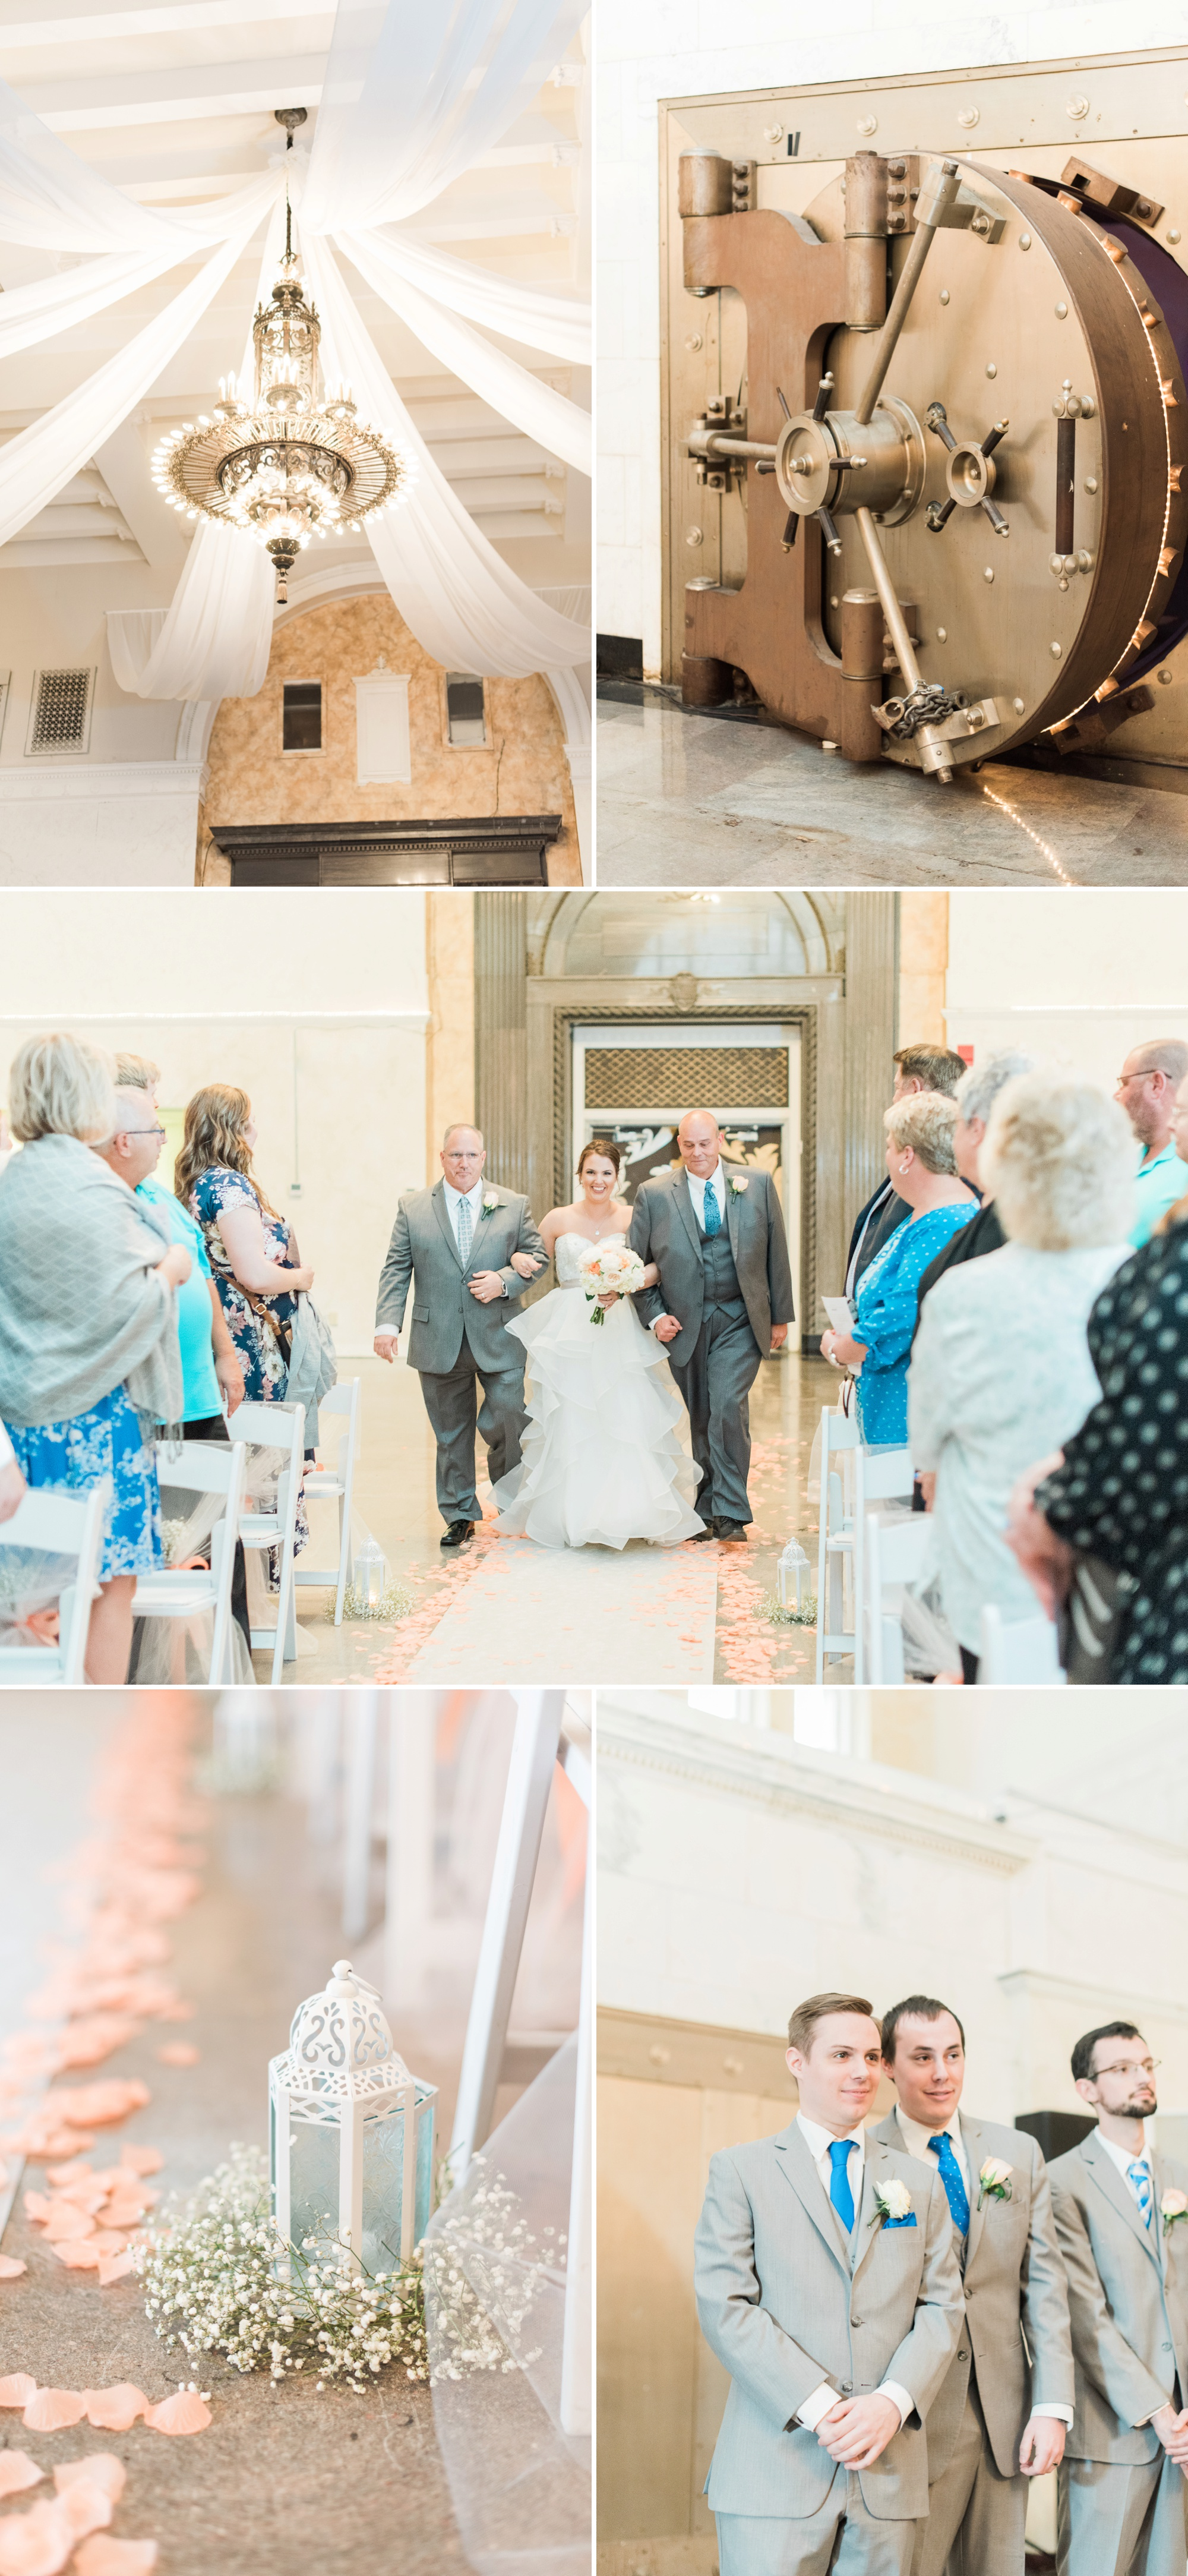 the-vault-columbus-ohio-wedding-emily-chris_0003.jpg